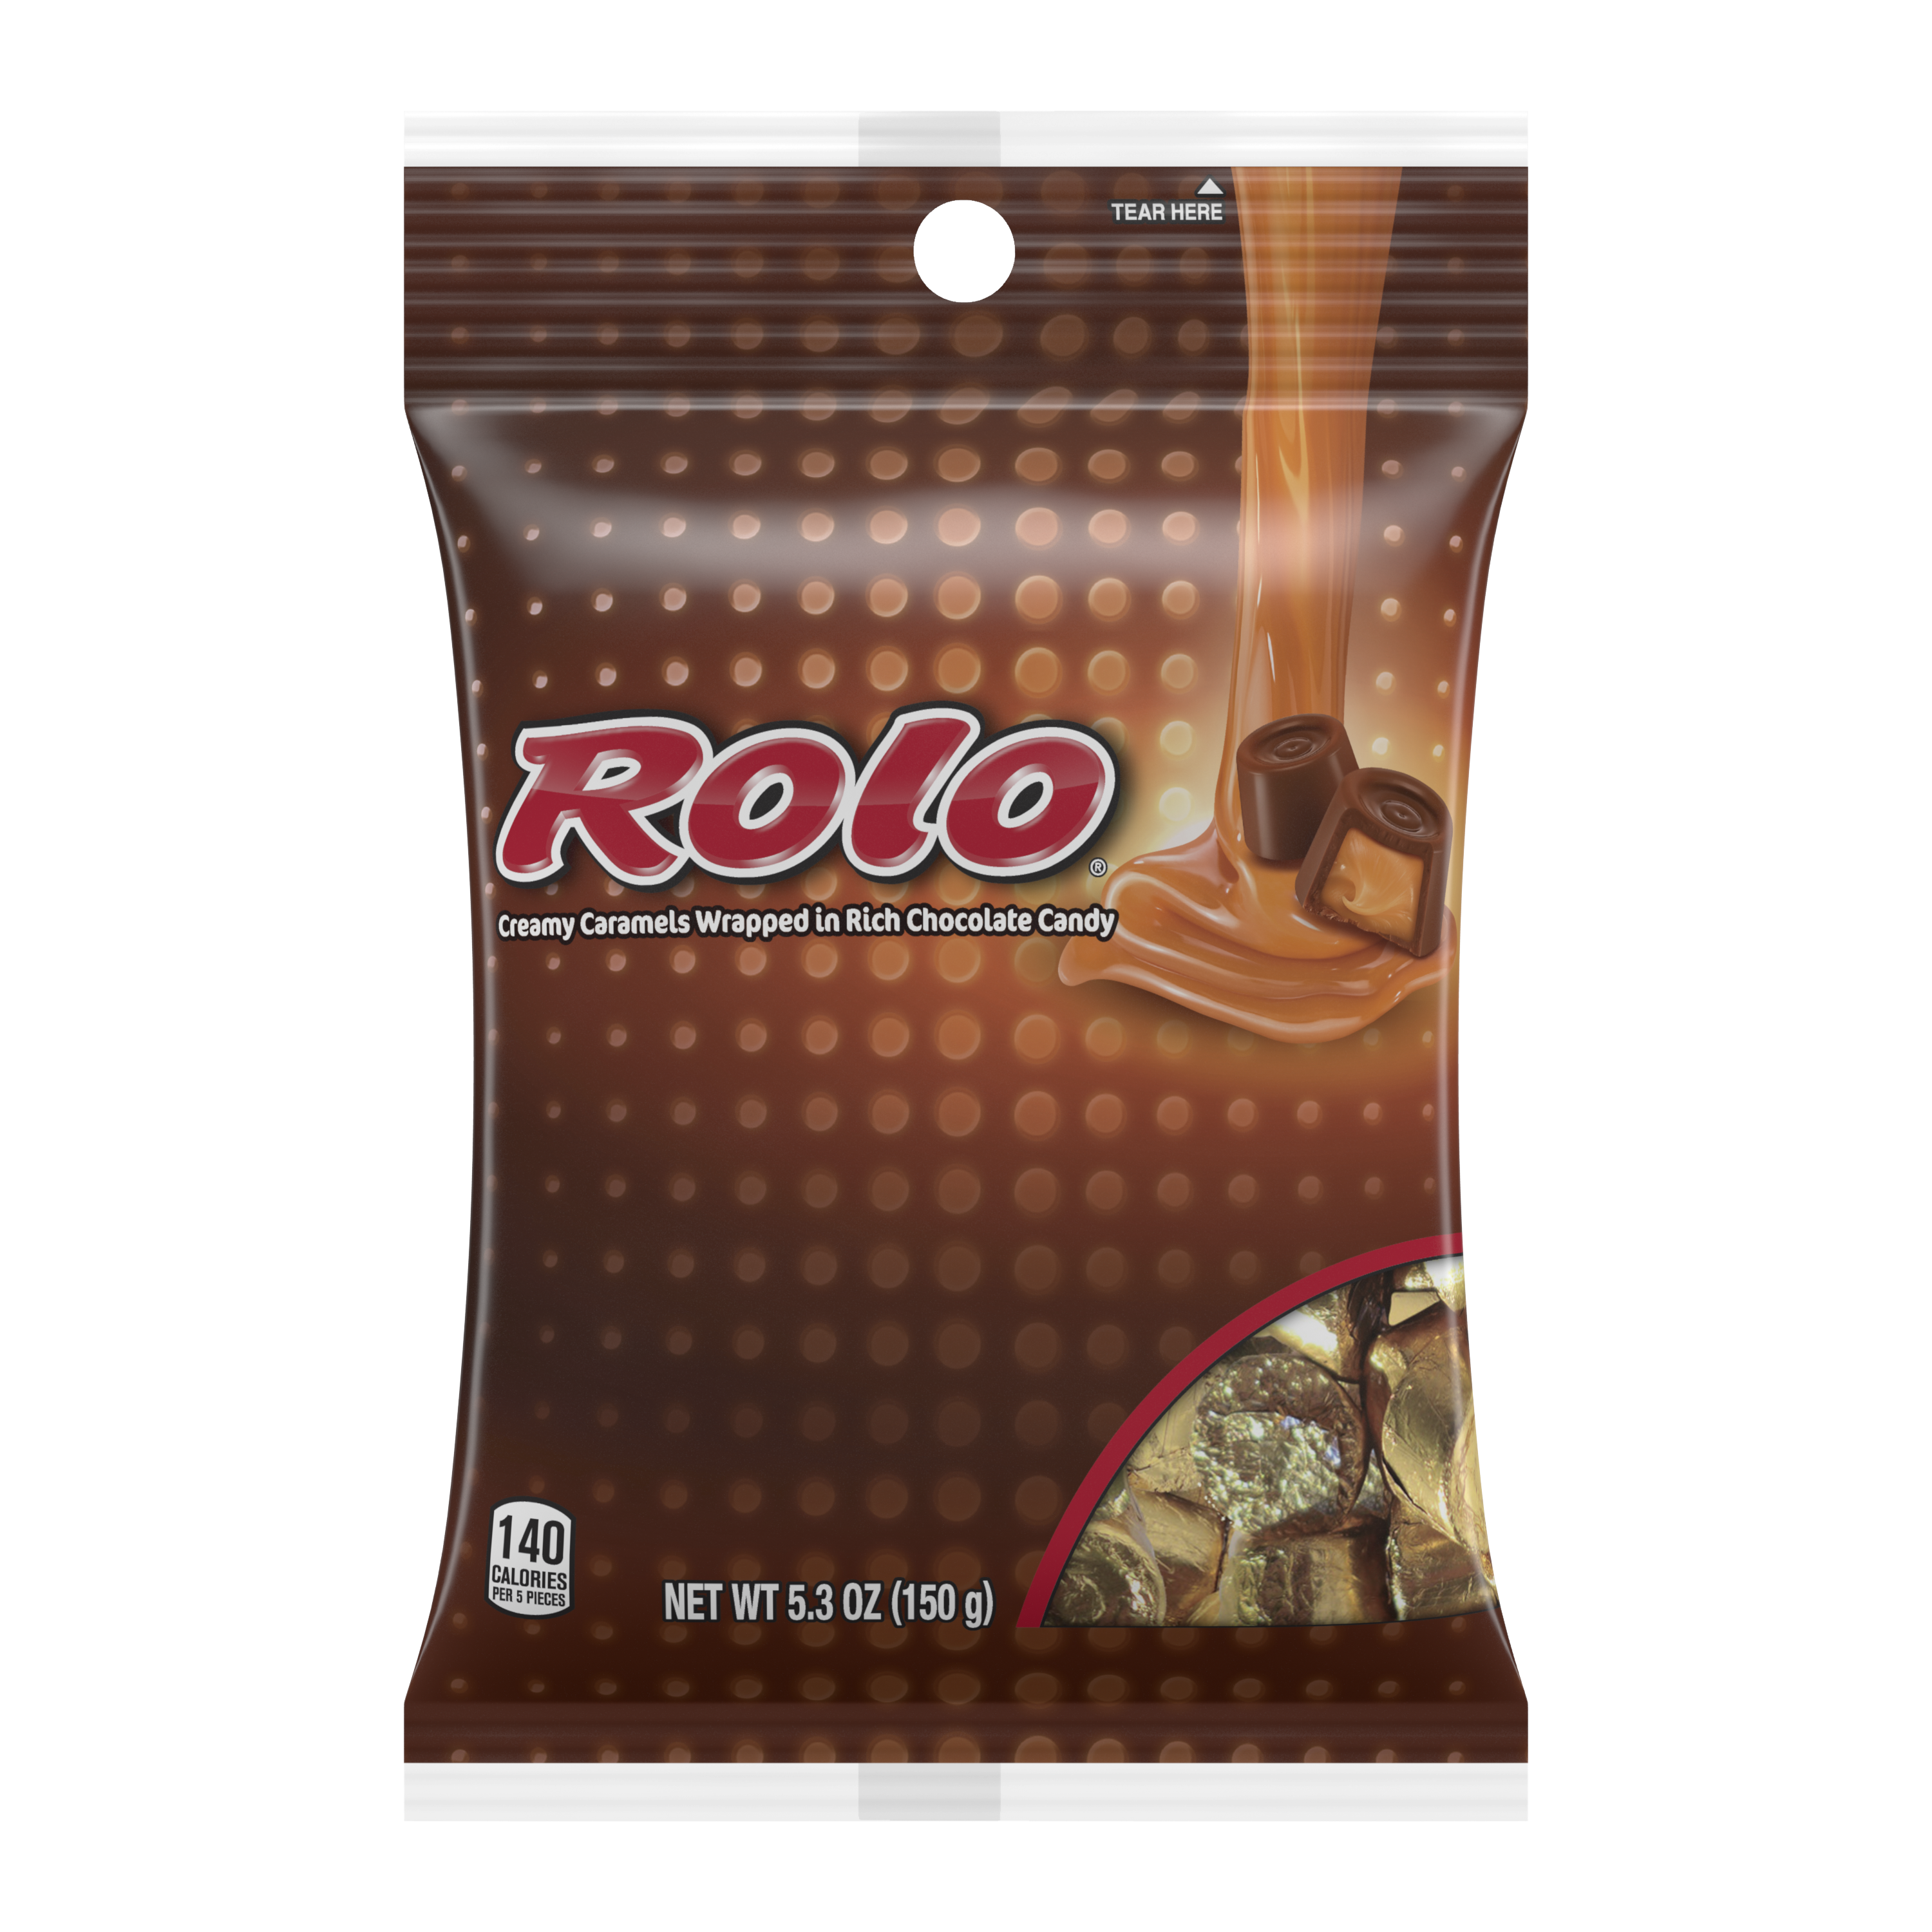 ROLO® Creamy Caramels in Rich Chocolate Candy, 5.3 oz bag - Front of Package